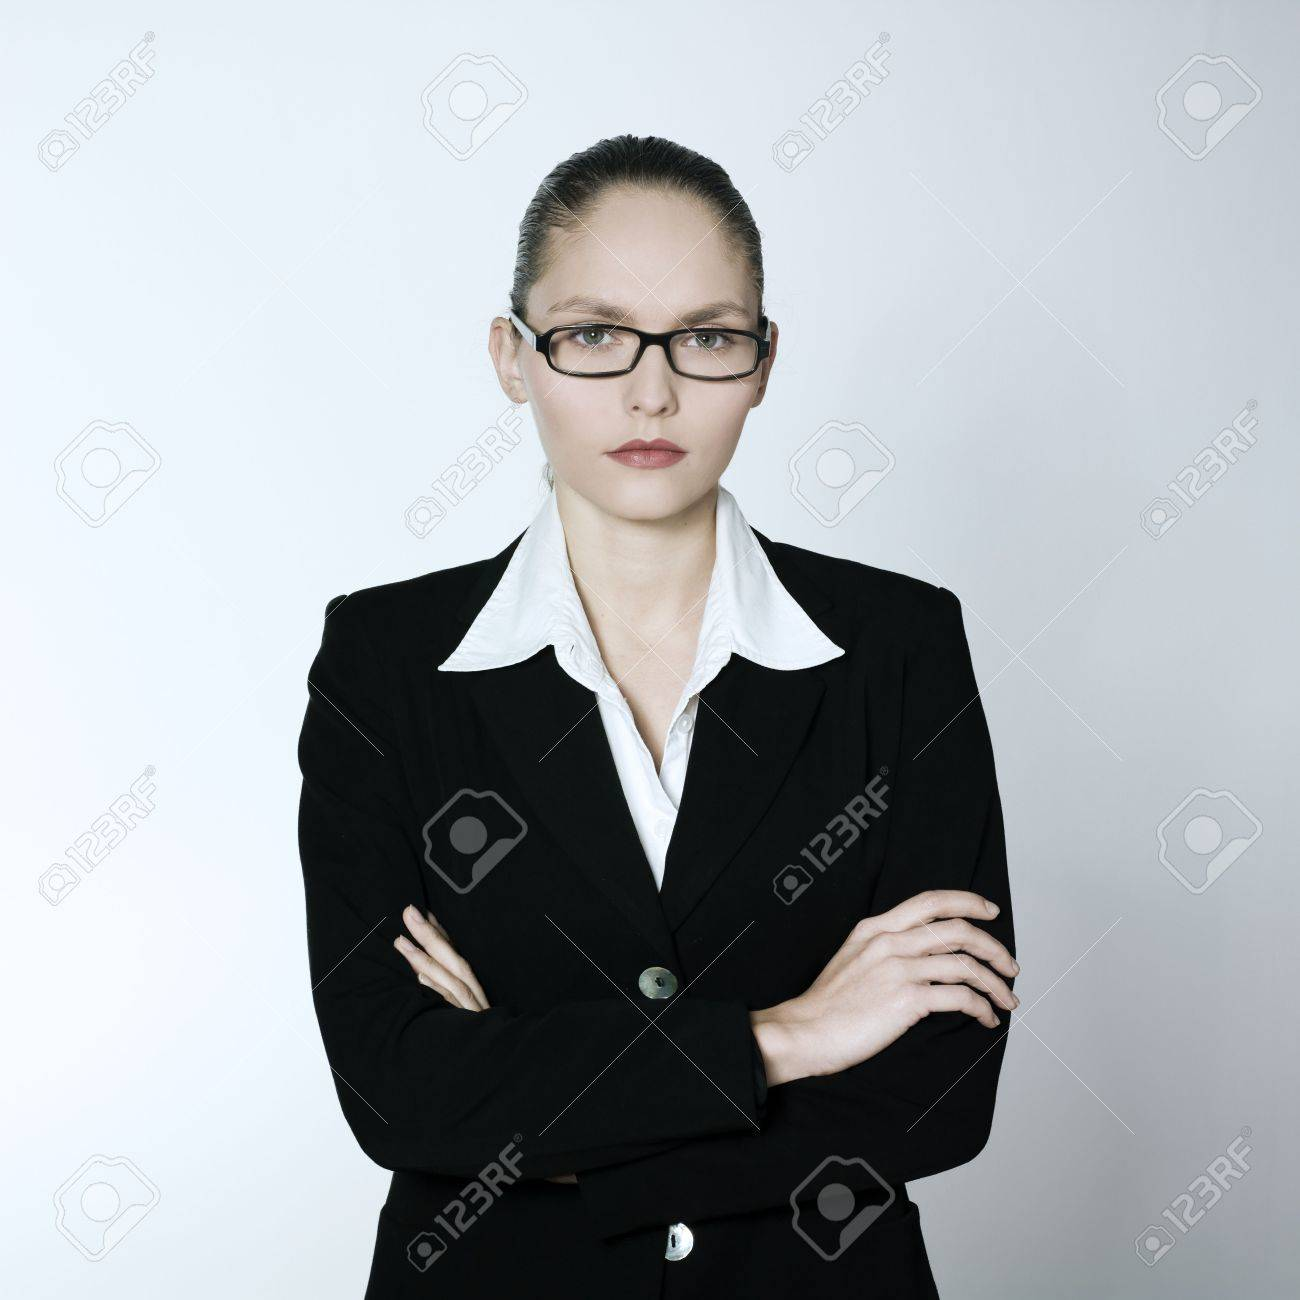 studio shot portrait of a beautiful young and strict woman in a costume suit Stock Photo - 2966649